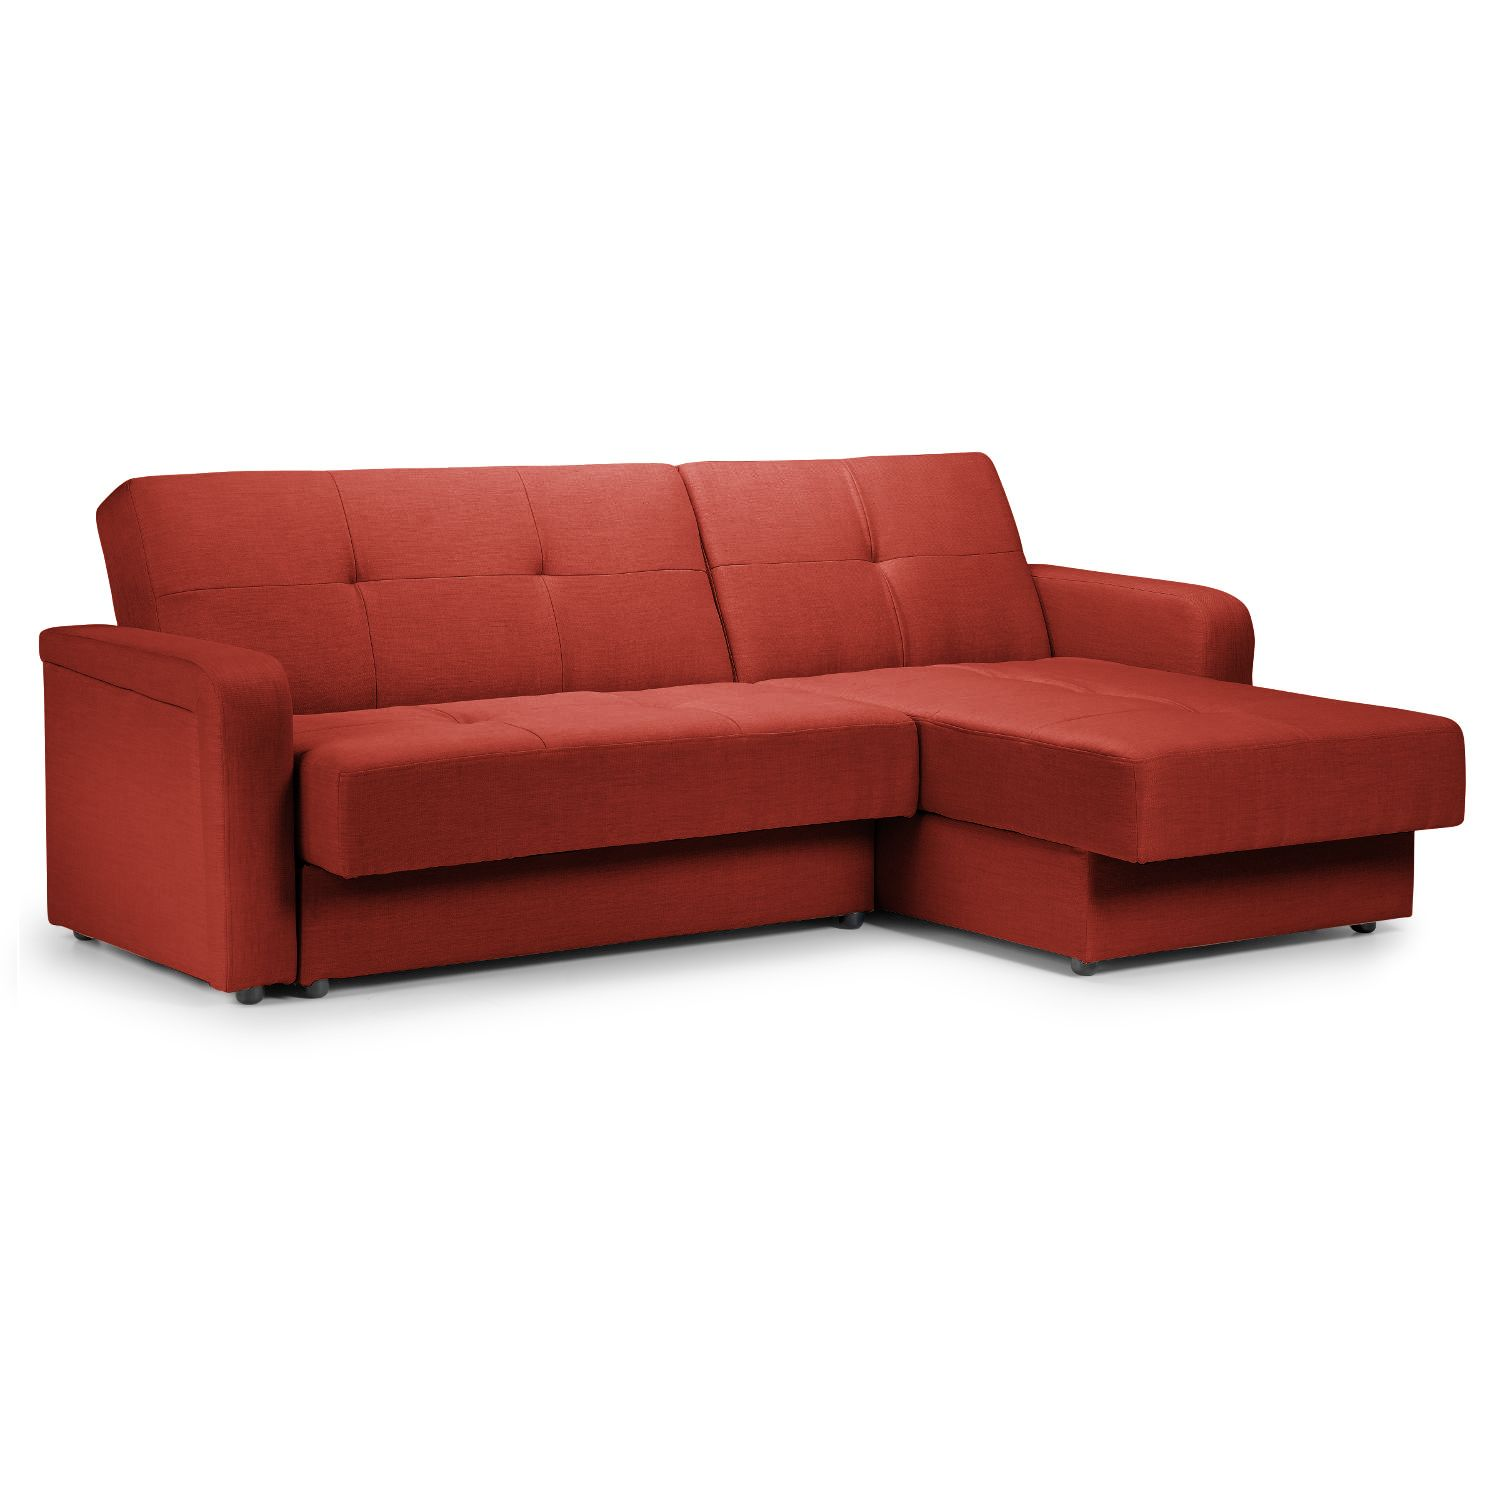 Florida Fabric Corner Sofa Bed Next Day Delivery From Worlds